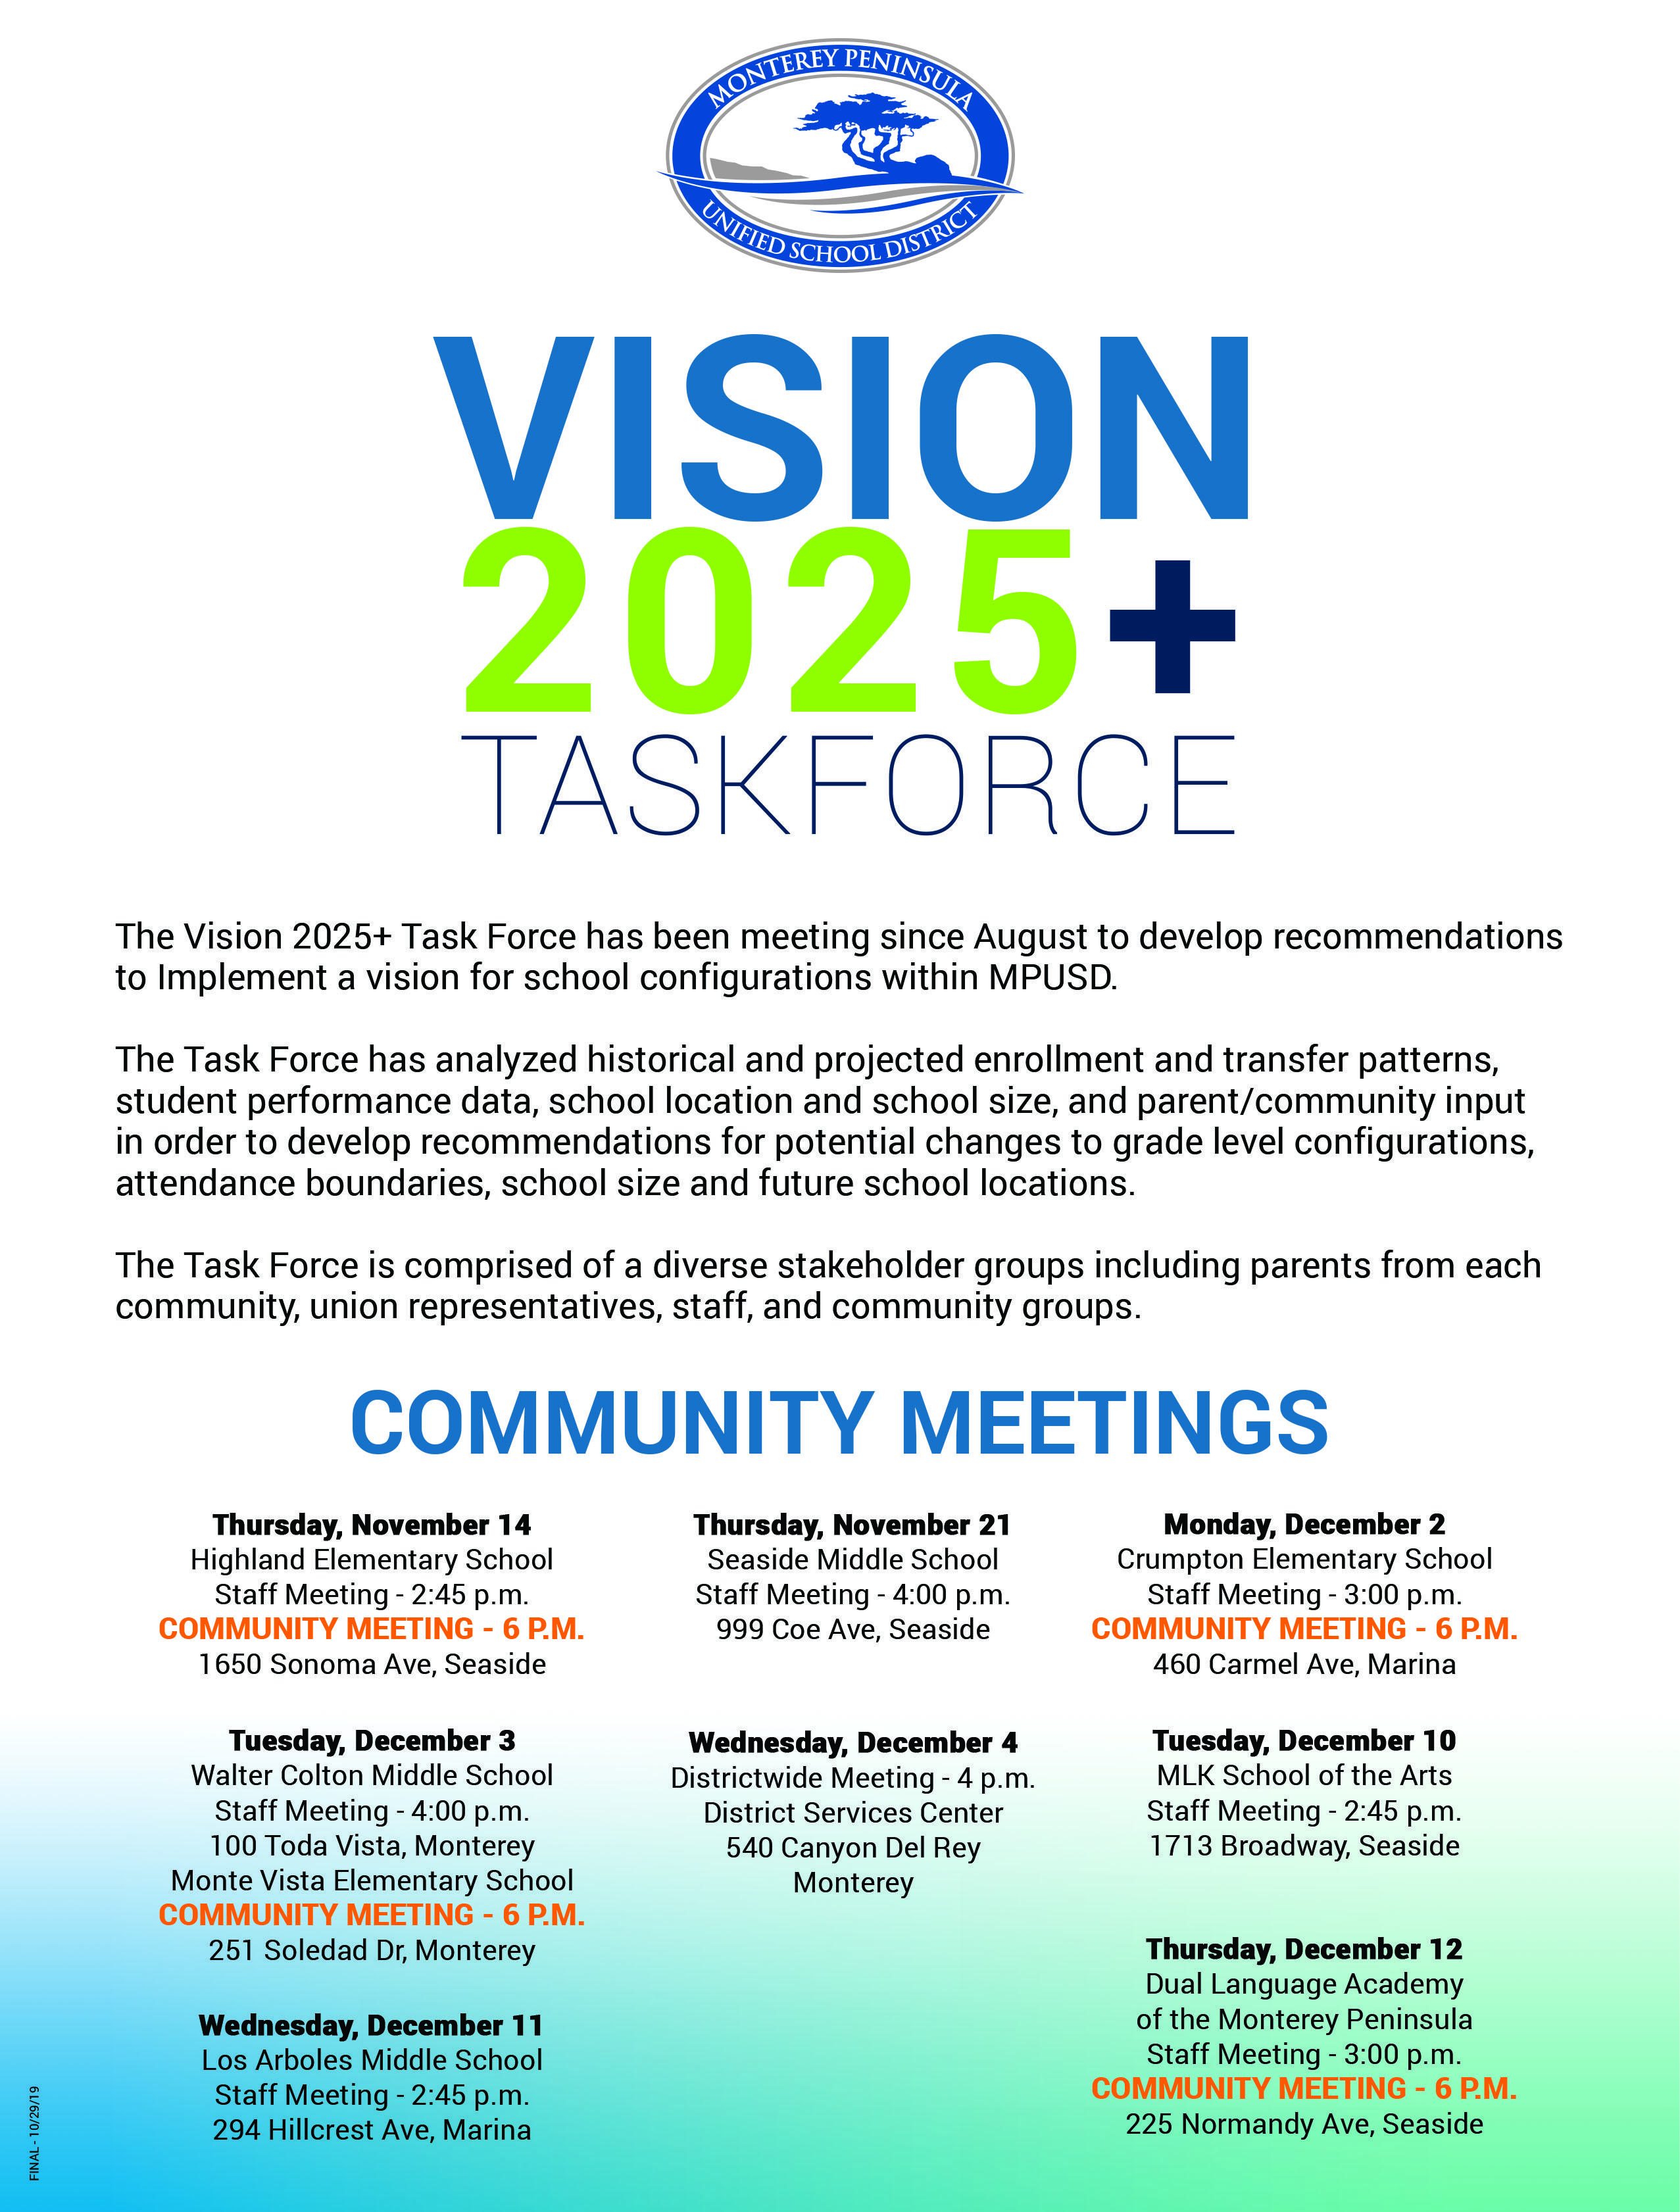 Vision 2025+ Community Meeting Flyer Listing dates and times for town hall meetings.